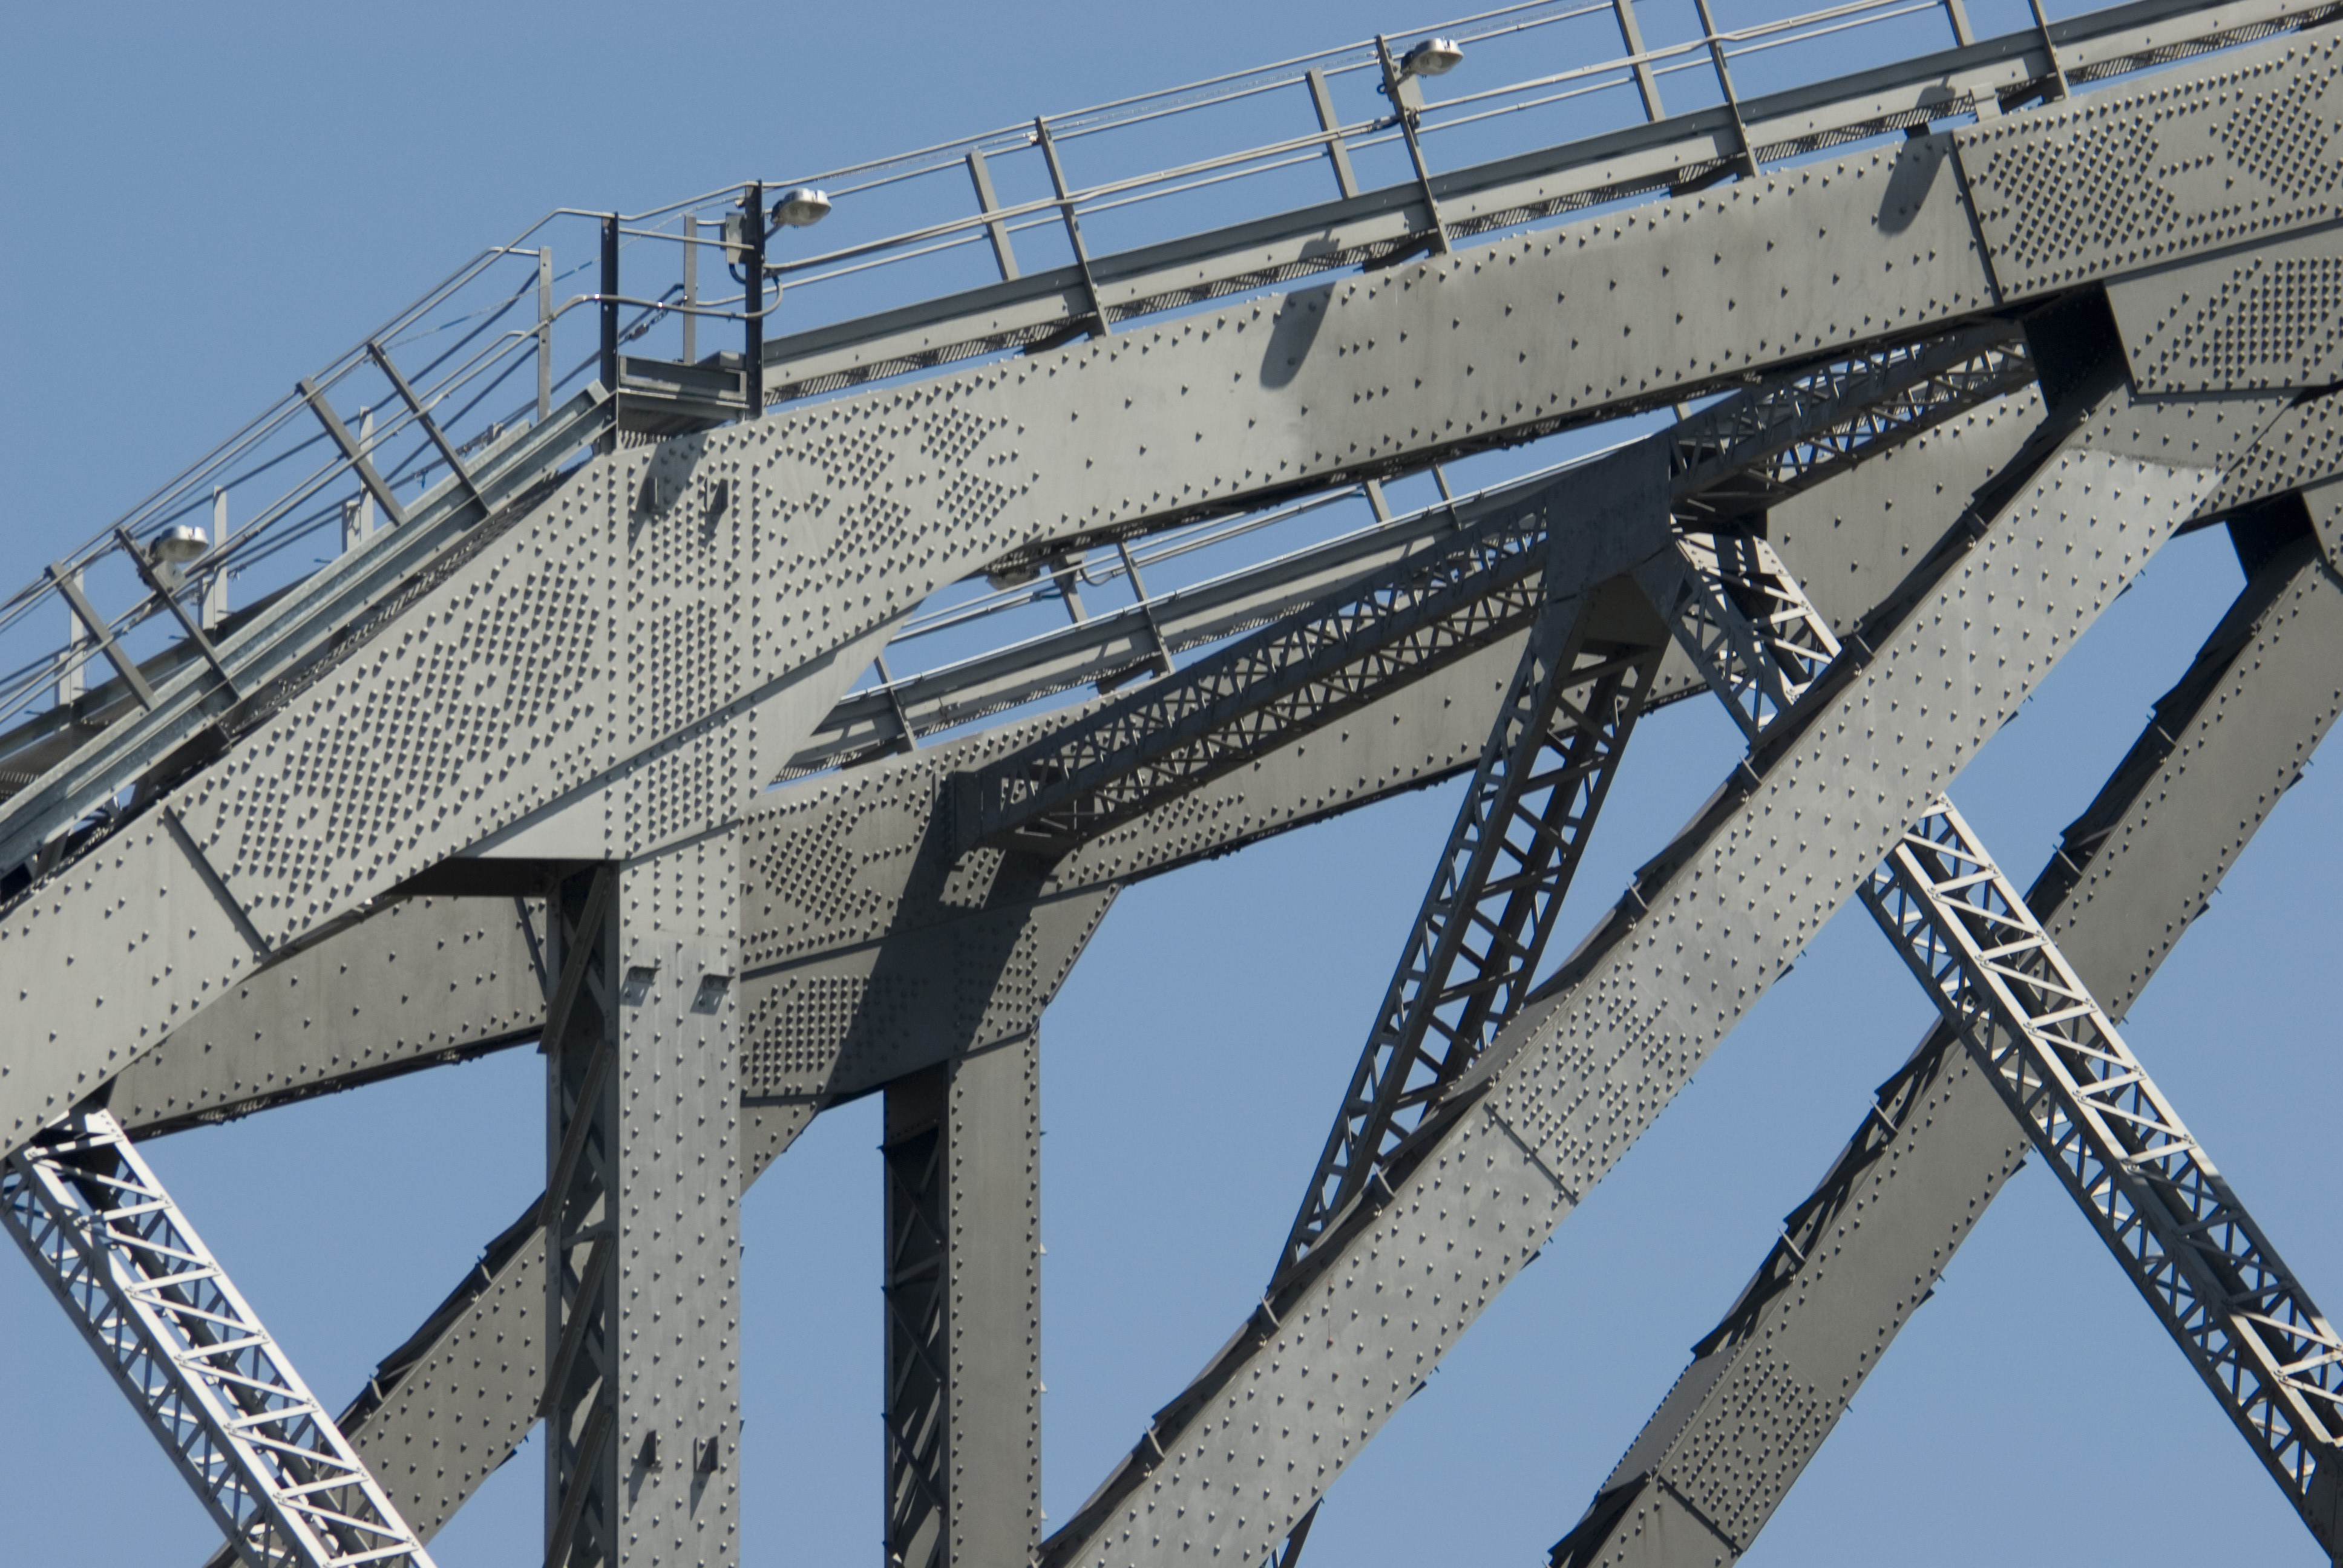 the superstructure of a large metal road bridge